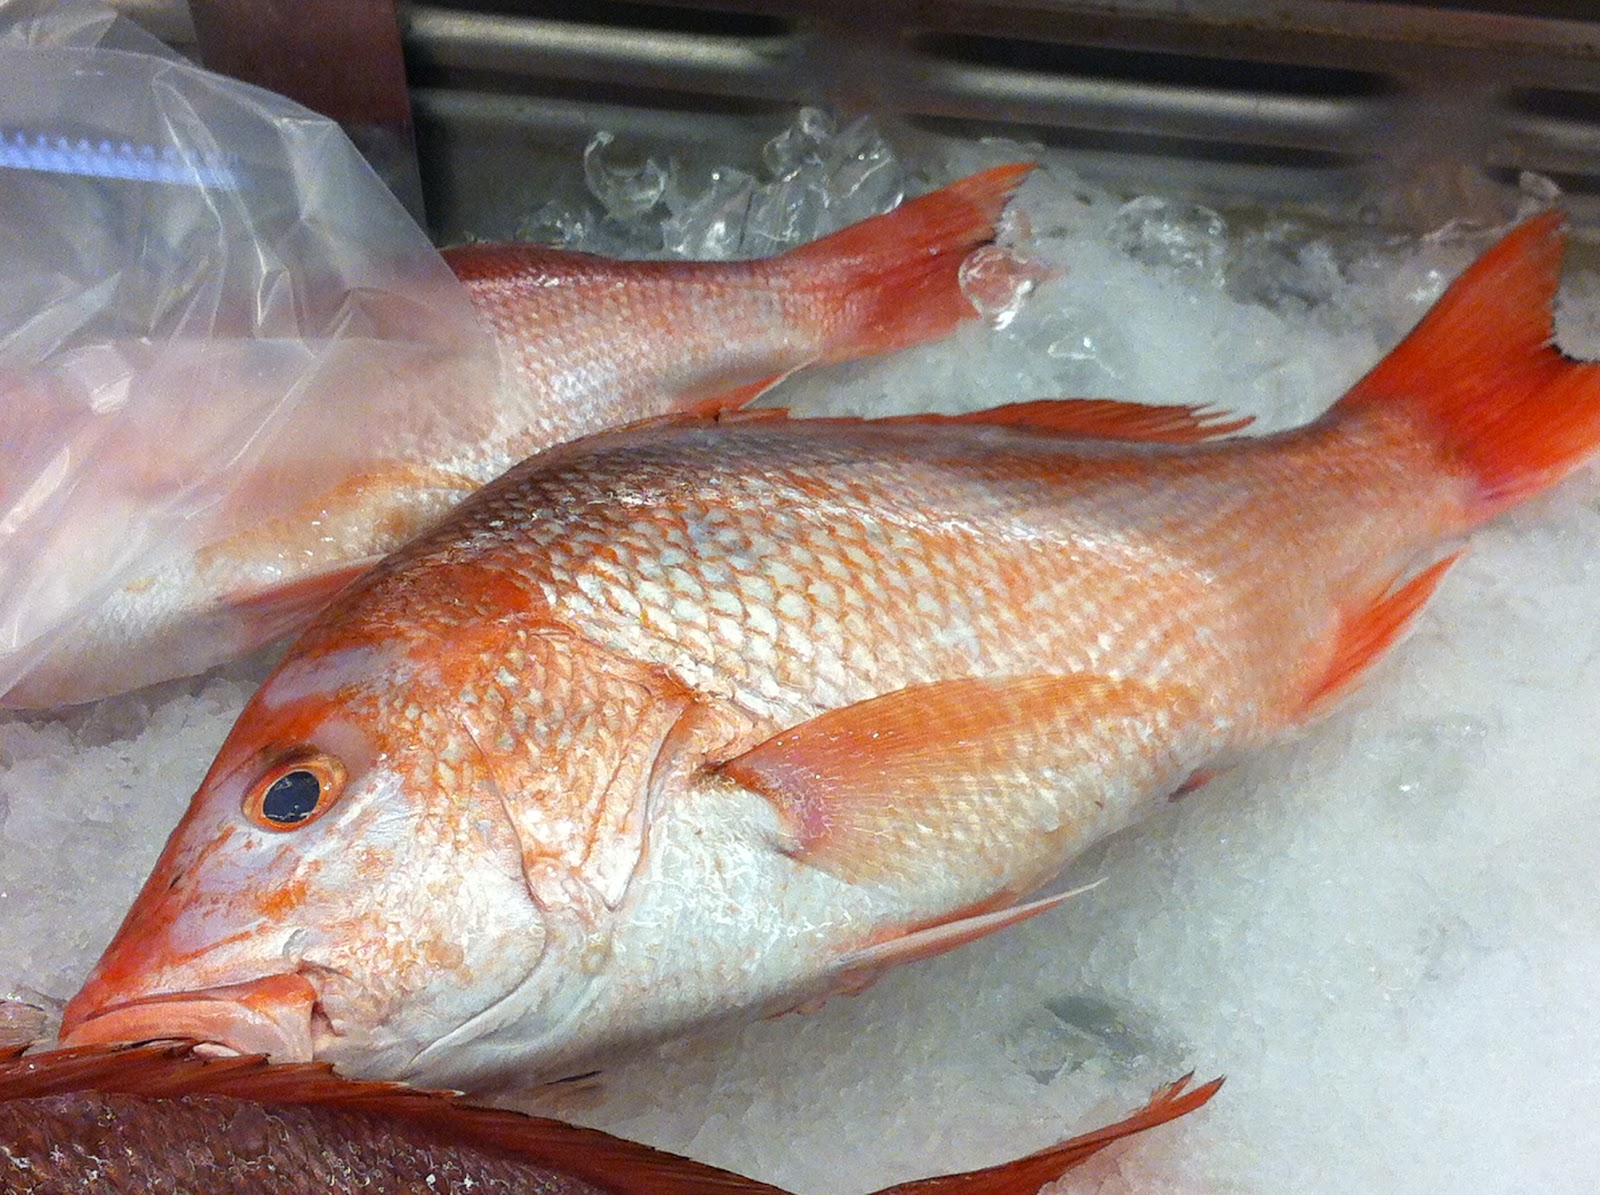 Statistical [R]ecipes: Cooking Whole Red Snapper